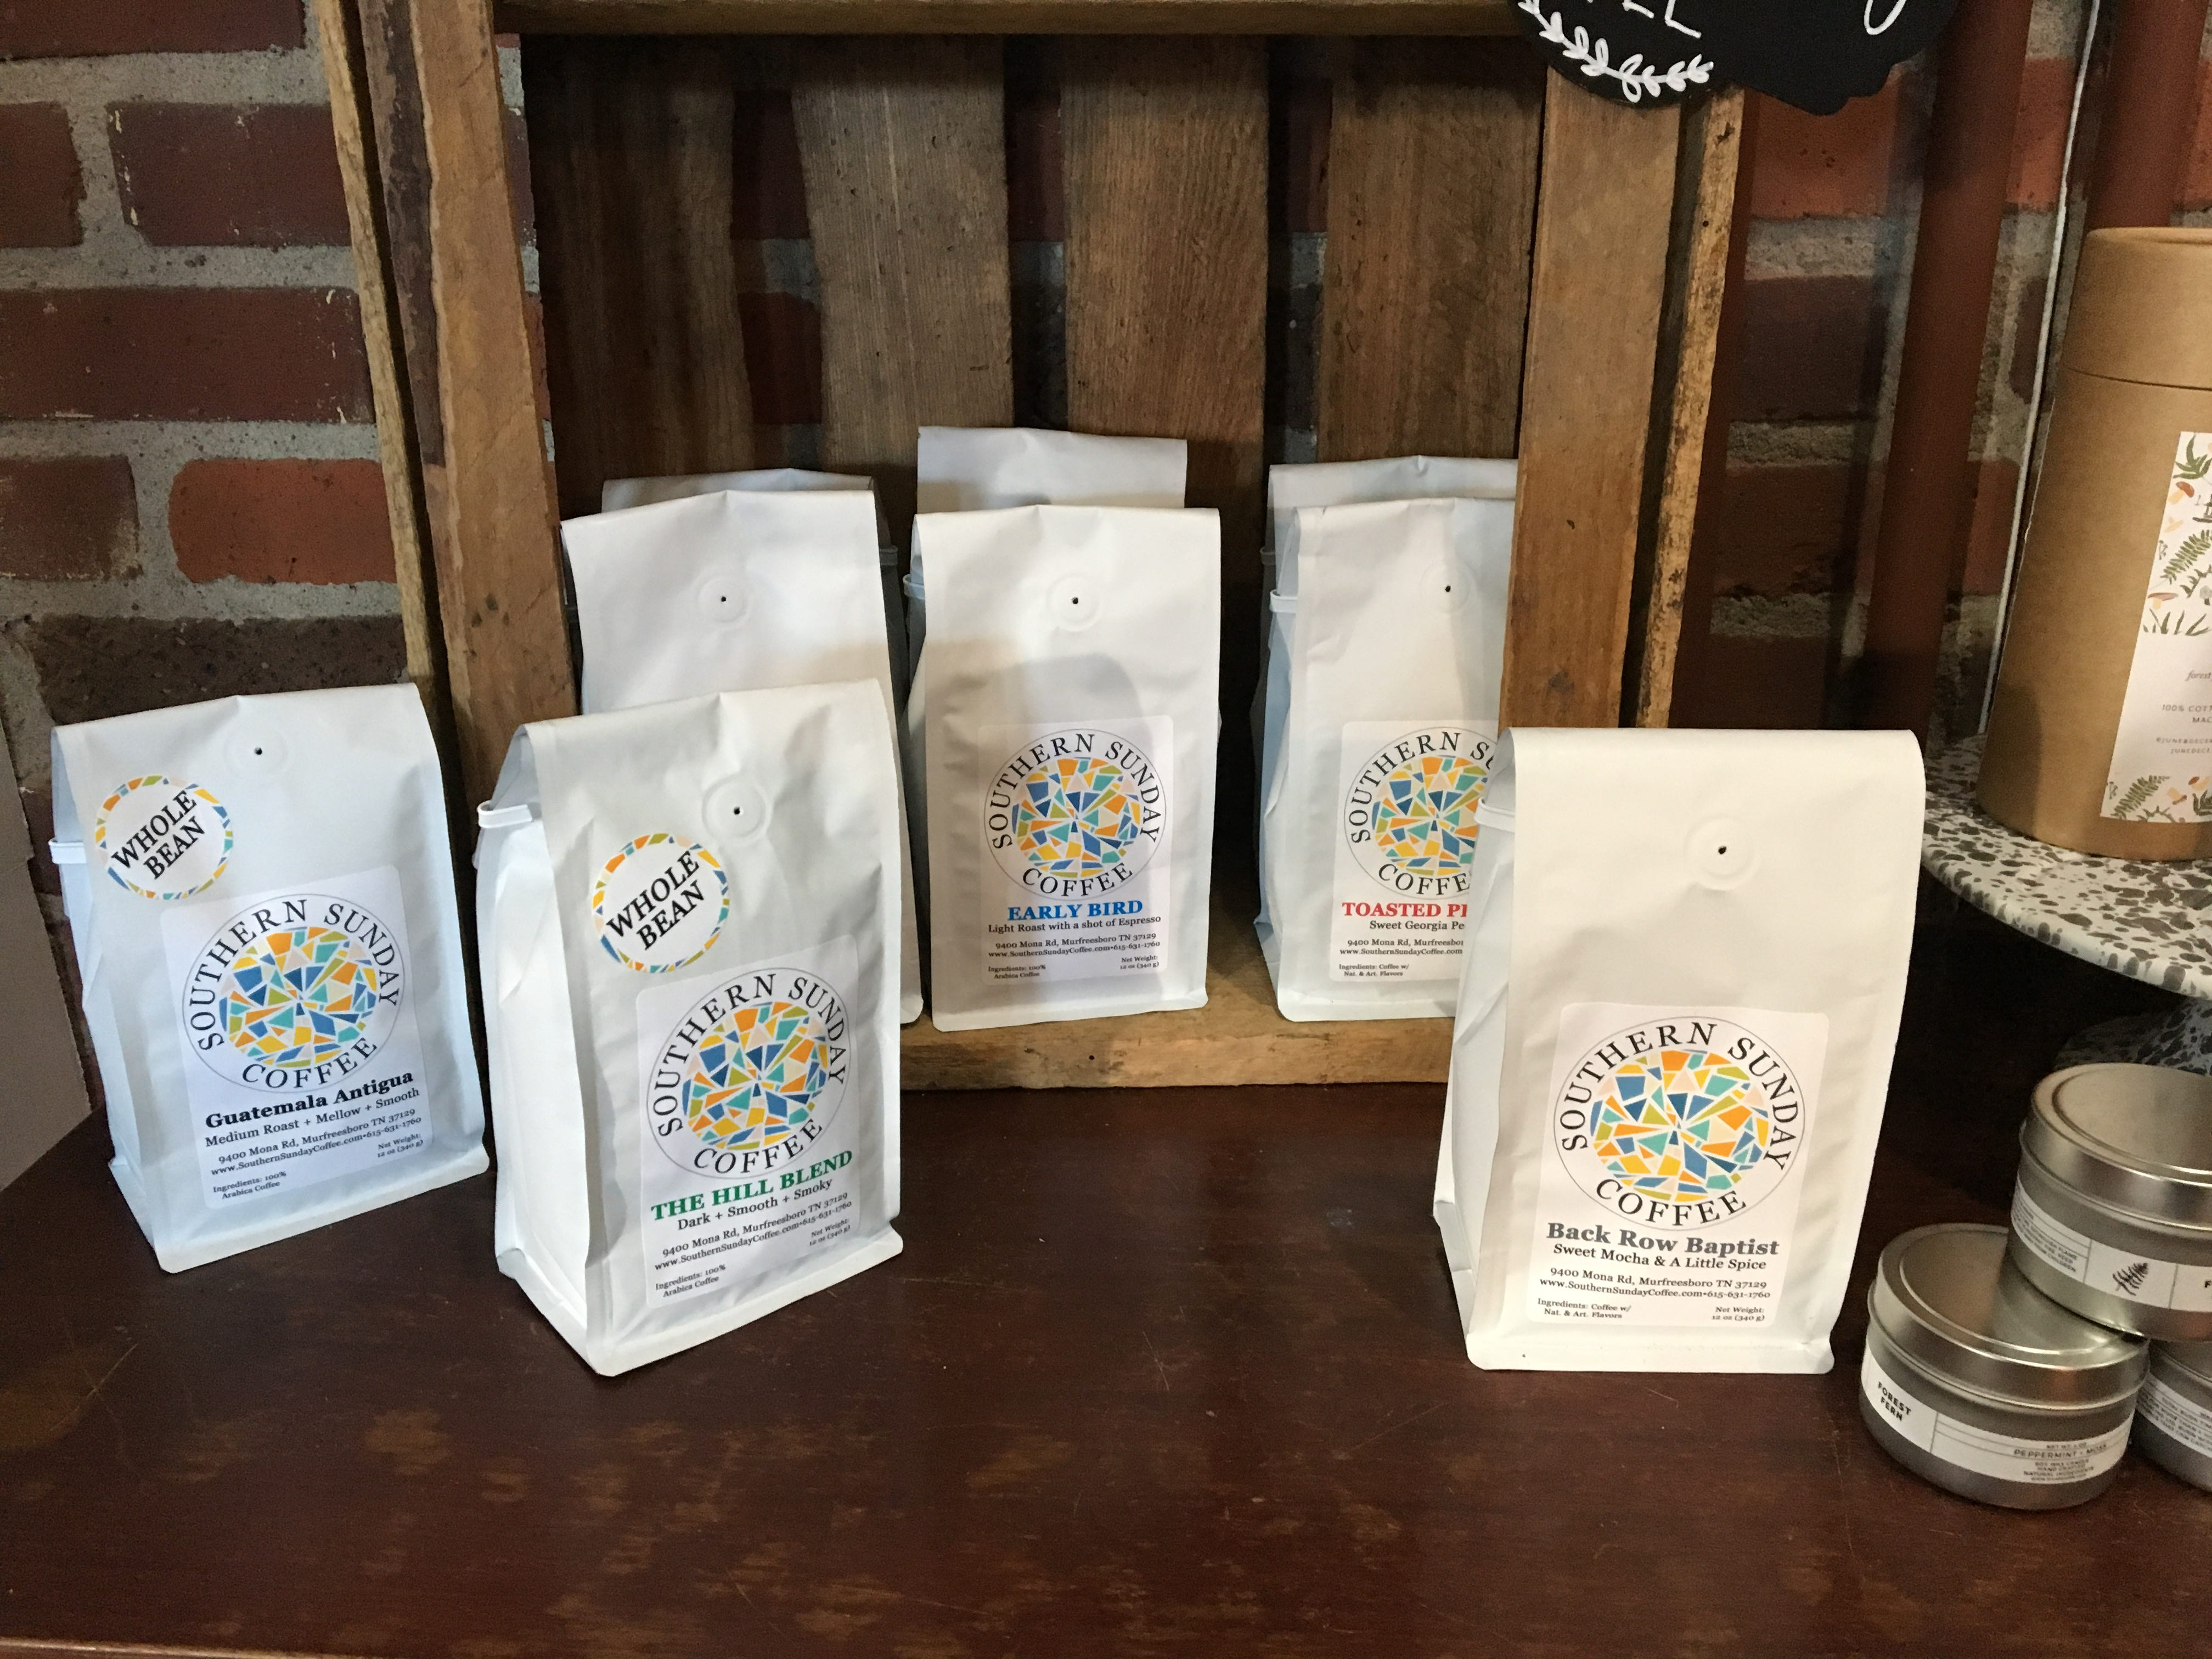 Take home a package of Southern Sunday coffee beans from Tasty Table and Olive Branch Bakery.